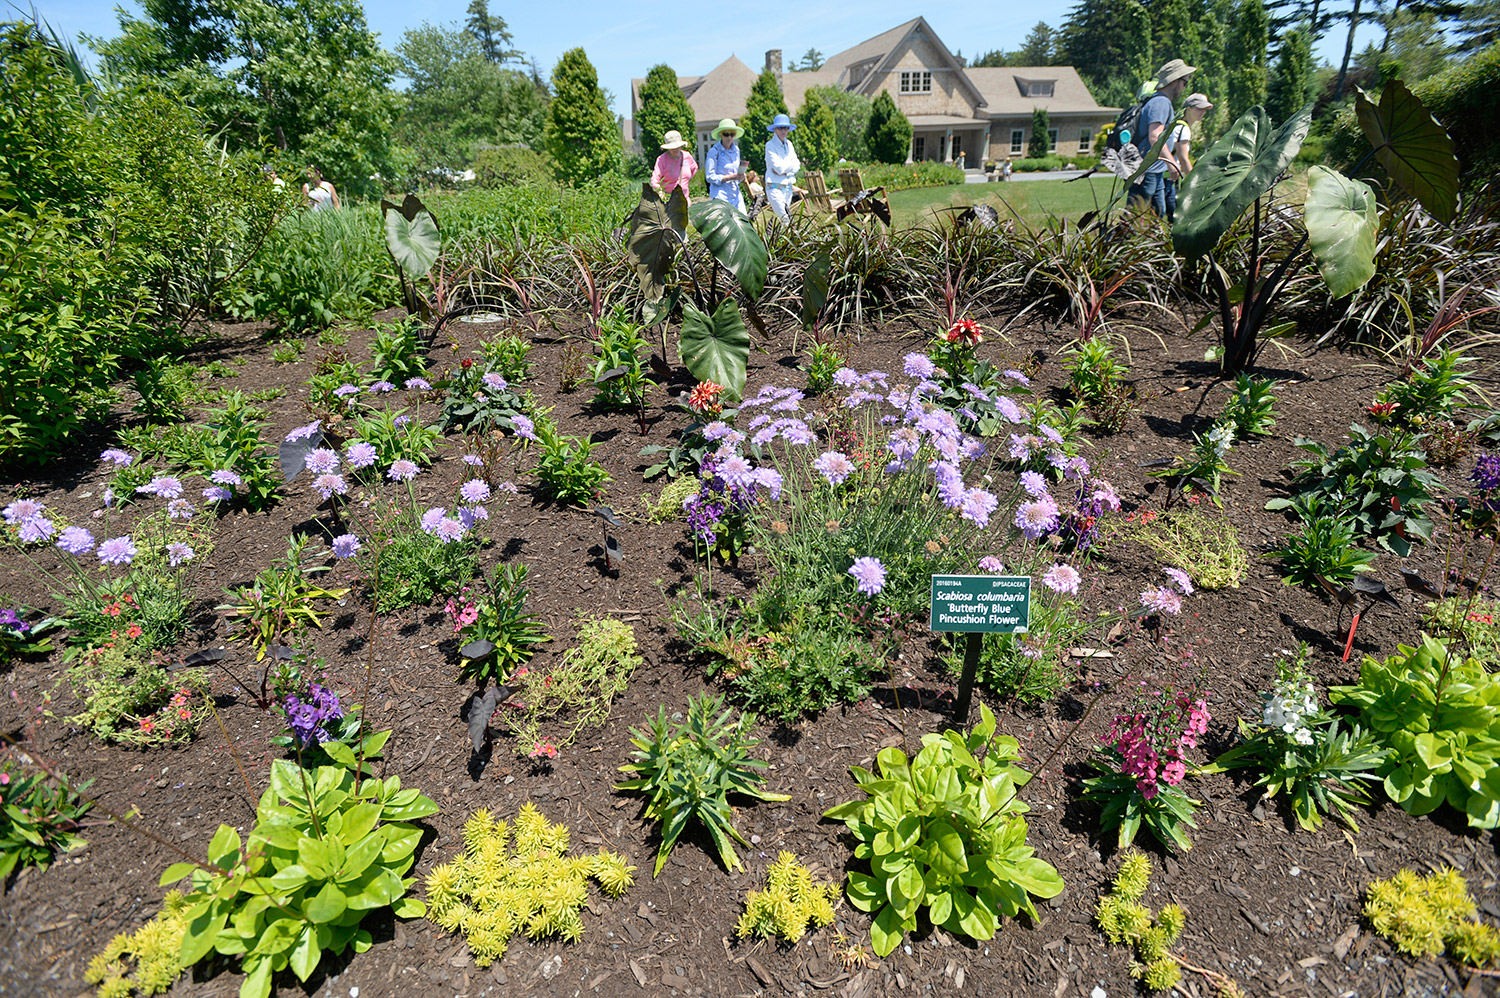 Visitors Look Over The Gardens Thursday At The Coastal Maine Botanical  Gardens In Boothbay. The Organization Was Cited By The Maine Department Of  ...